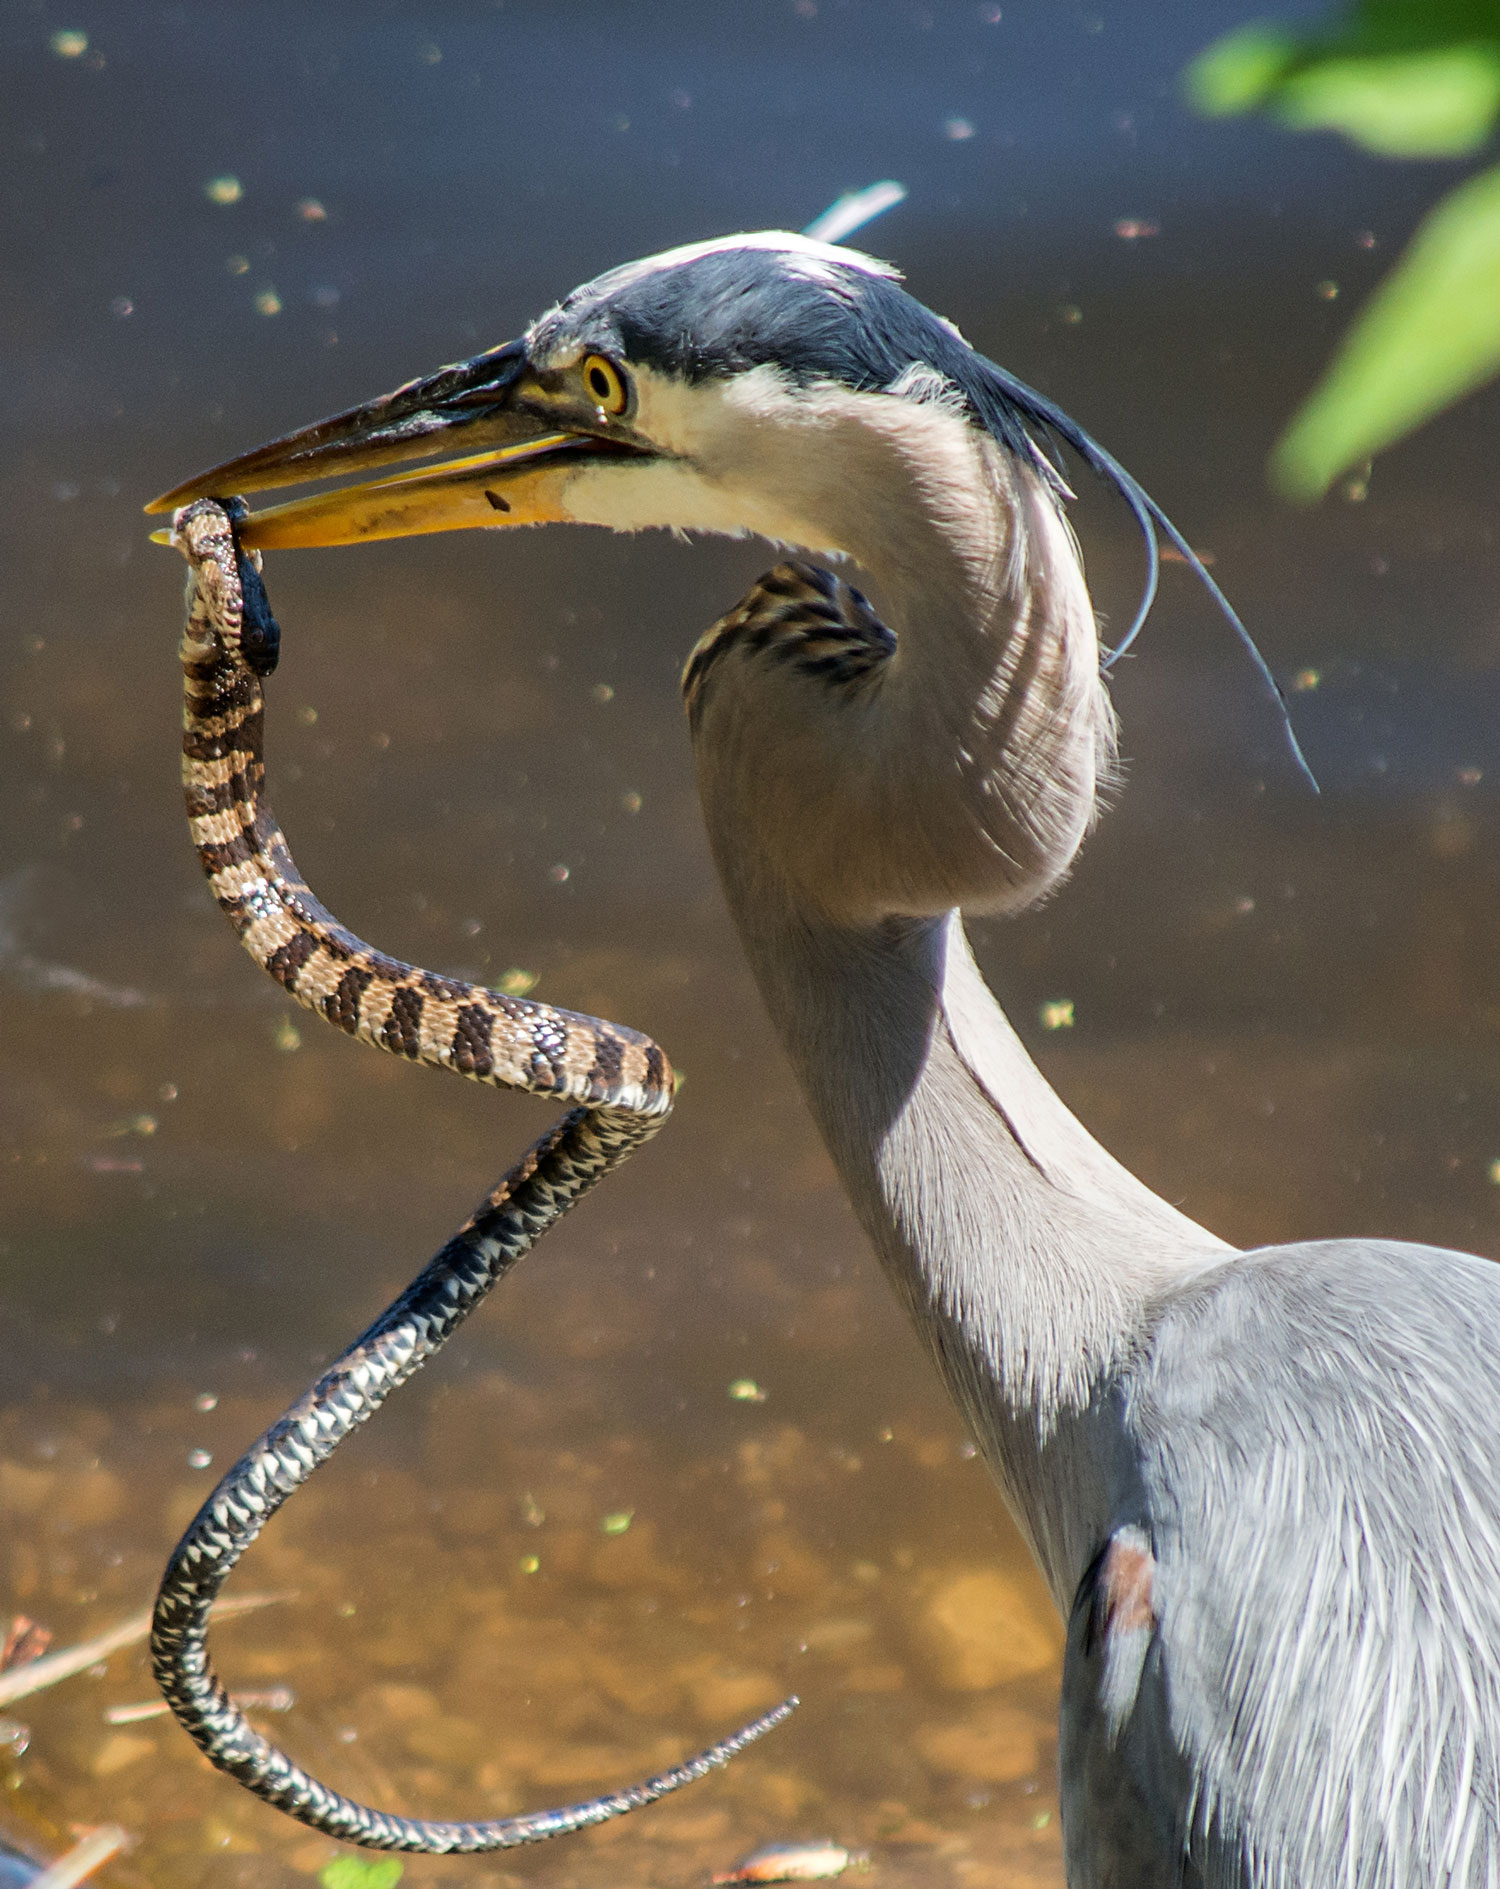 Photo for: Heron